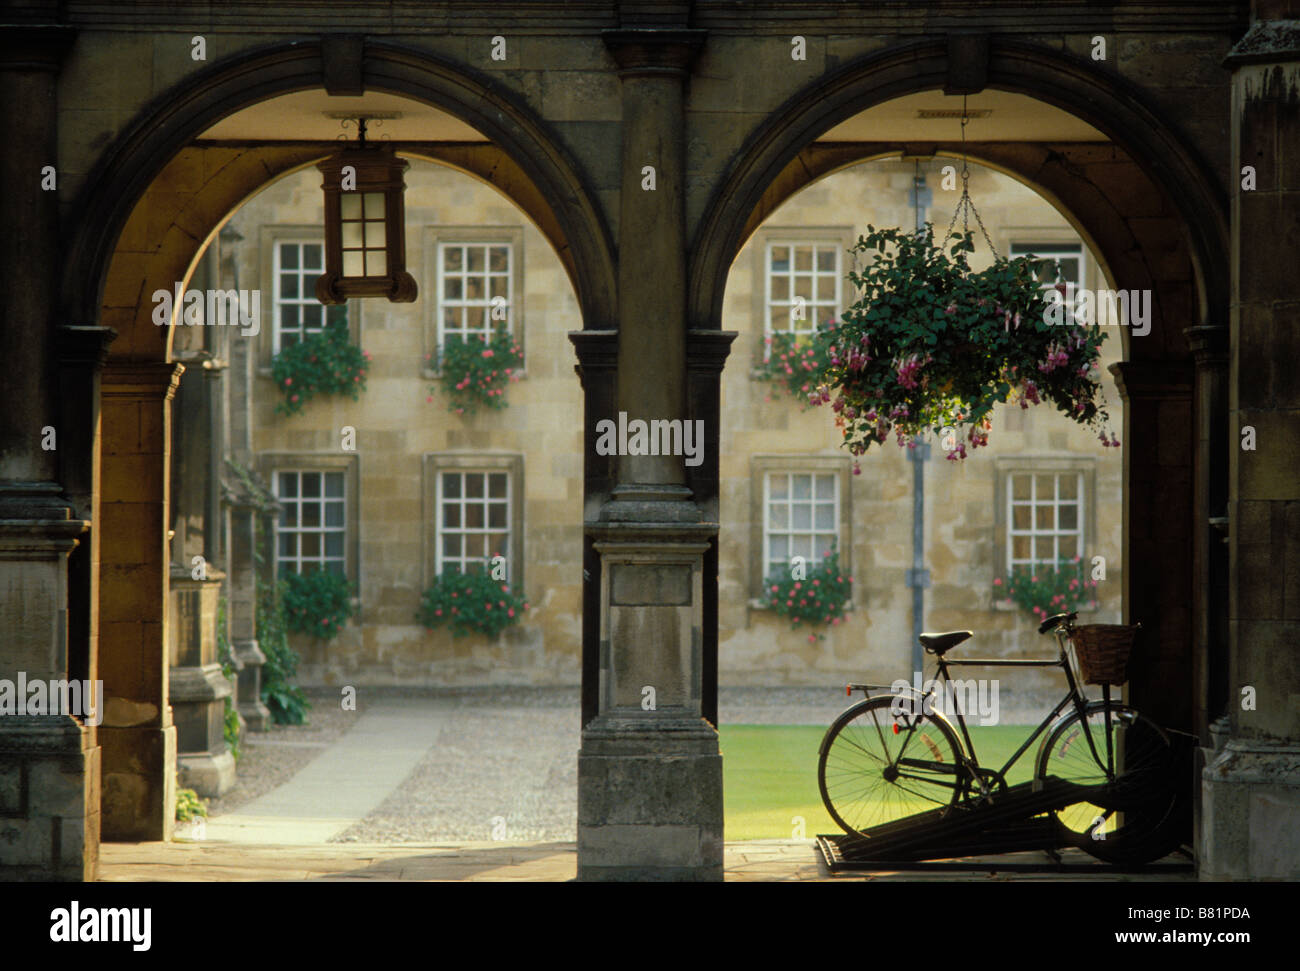 A parked bicycle under the cloister archway to the quadrangle of Peterhouse College, Cambridge University UK - Stock Image